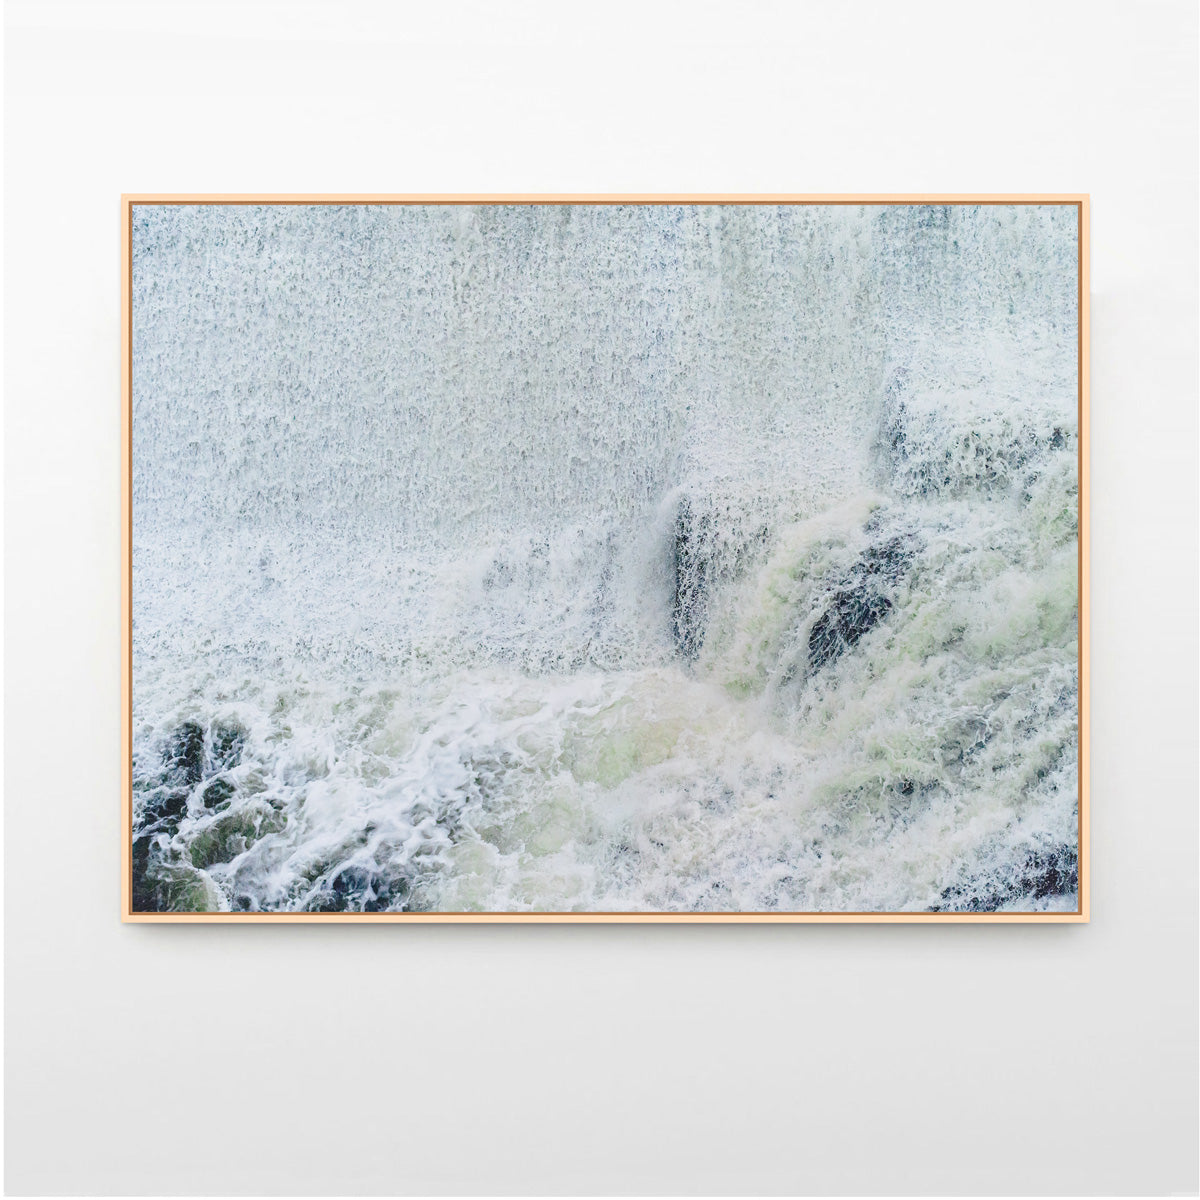 Mark Römisch. Bulletproof #5 / Fine Art Photography